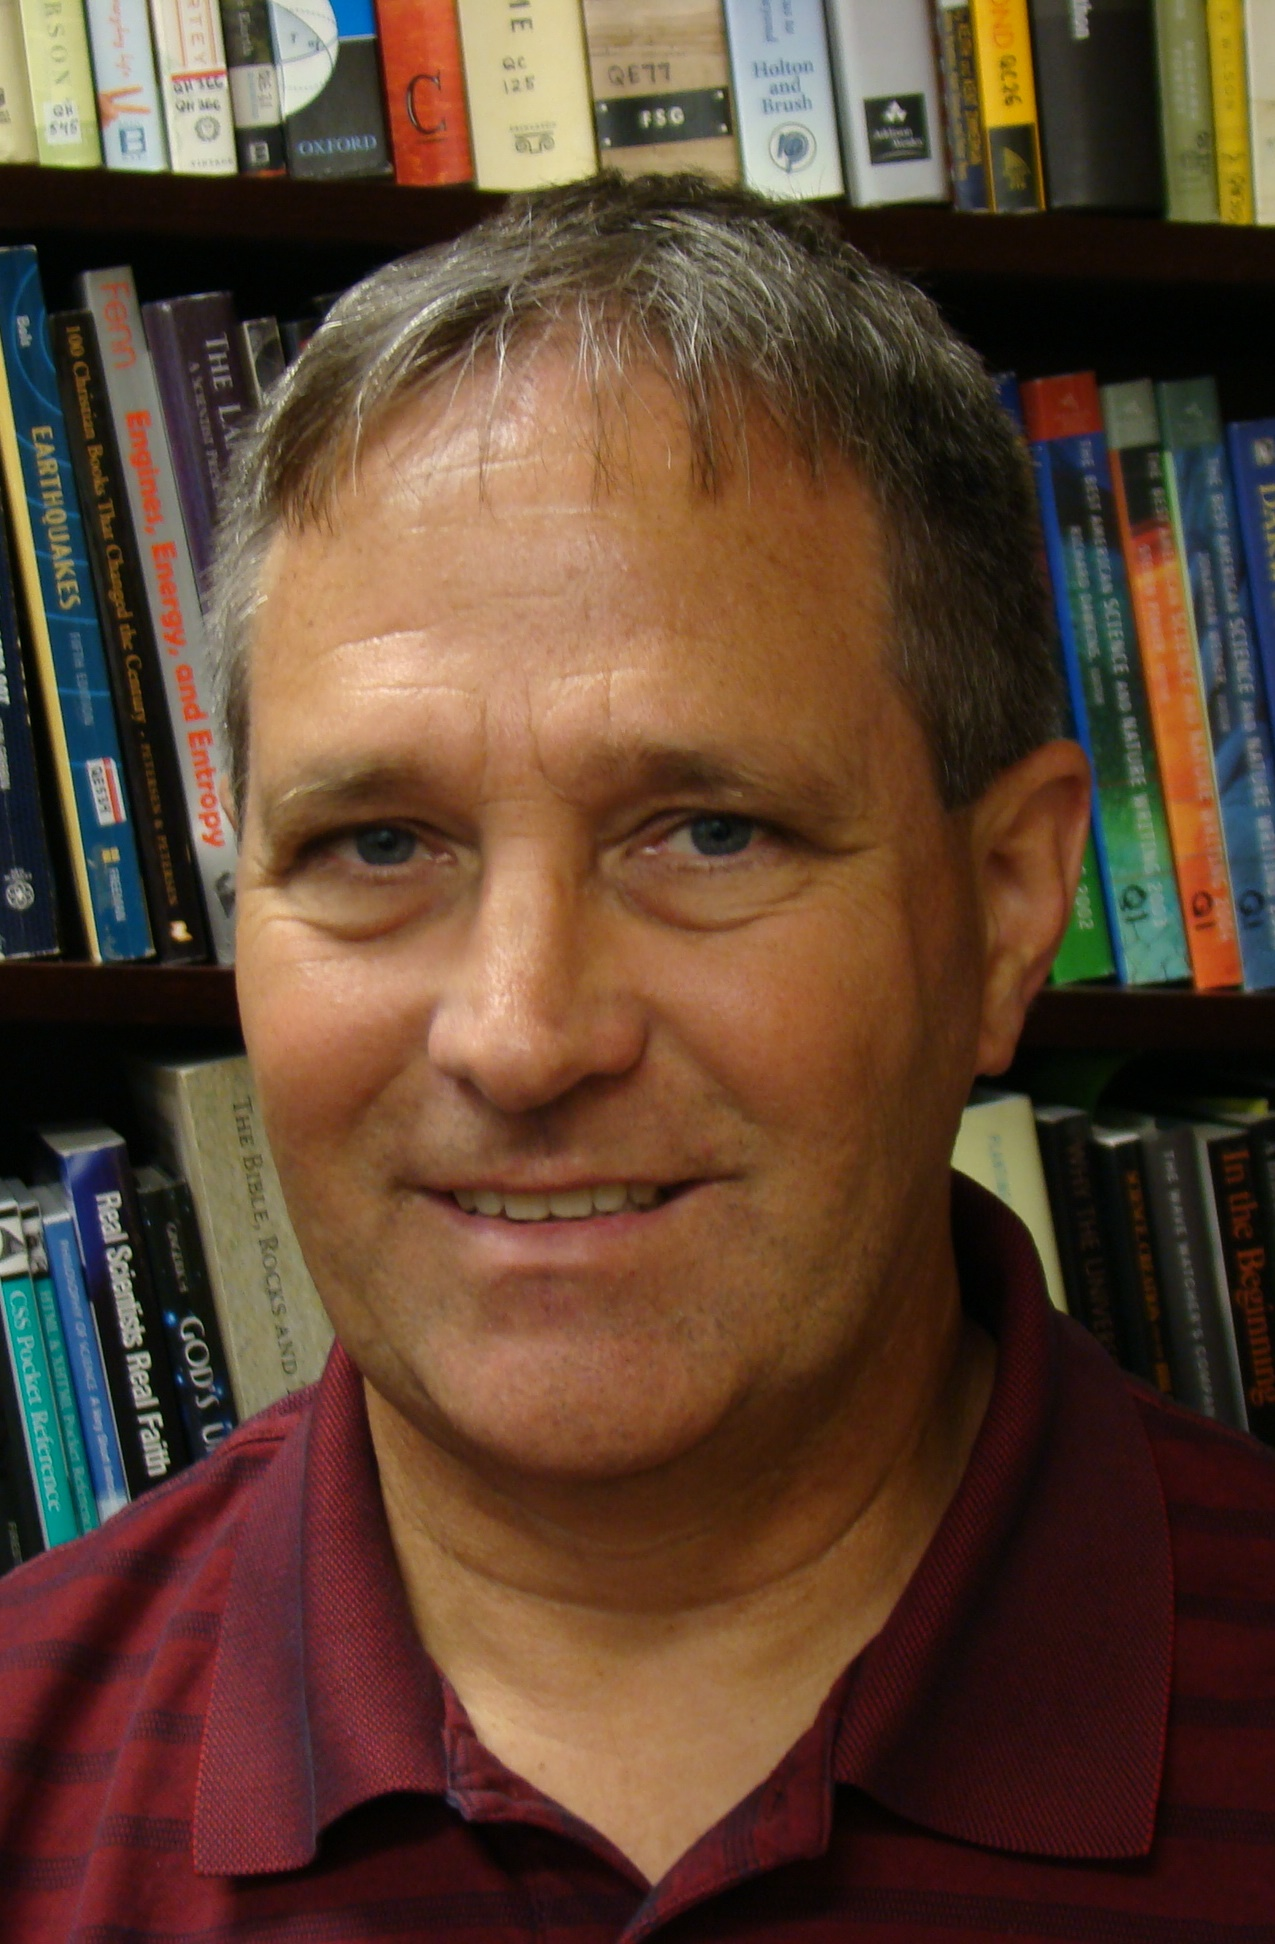 Assistant Professor, Director of Instructional Labs Dr. Michael Huster